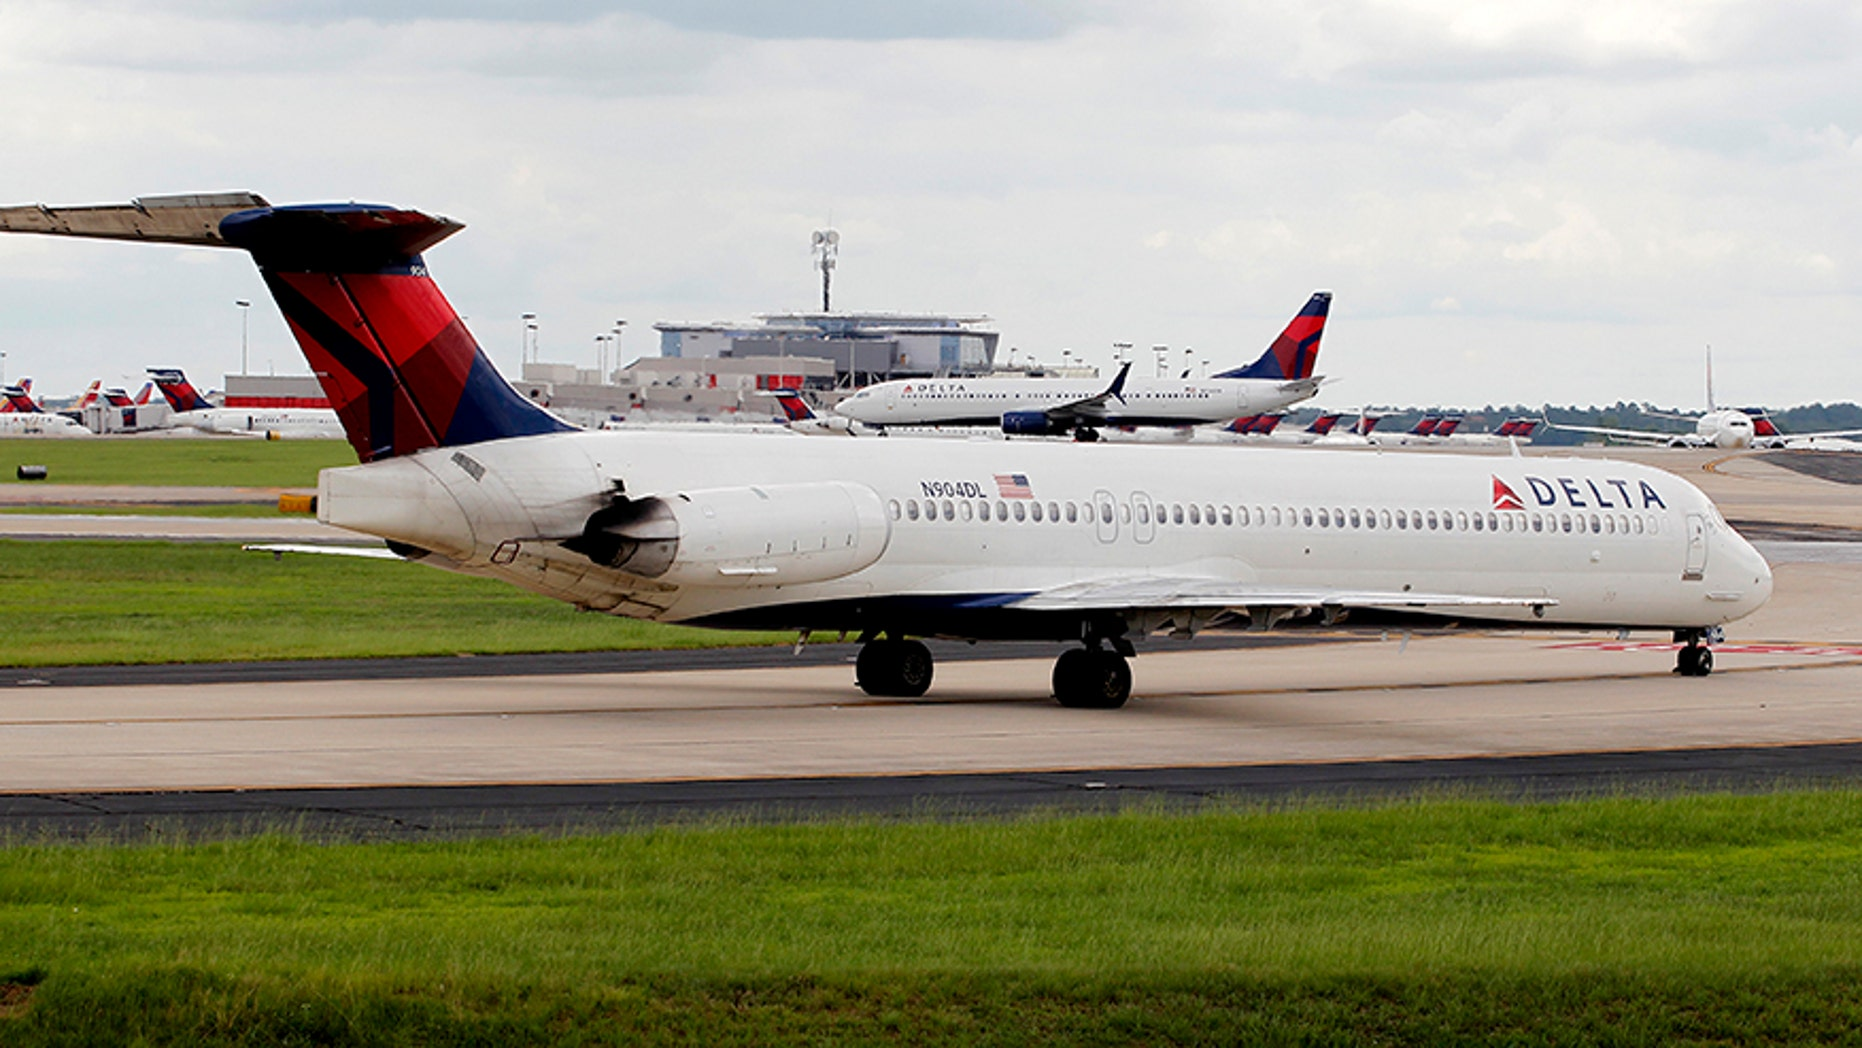 Delta aircraft at Hartsfield-Jackson International Airport in Atlanta, Ga.